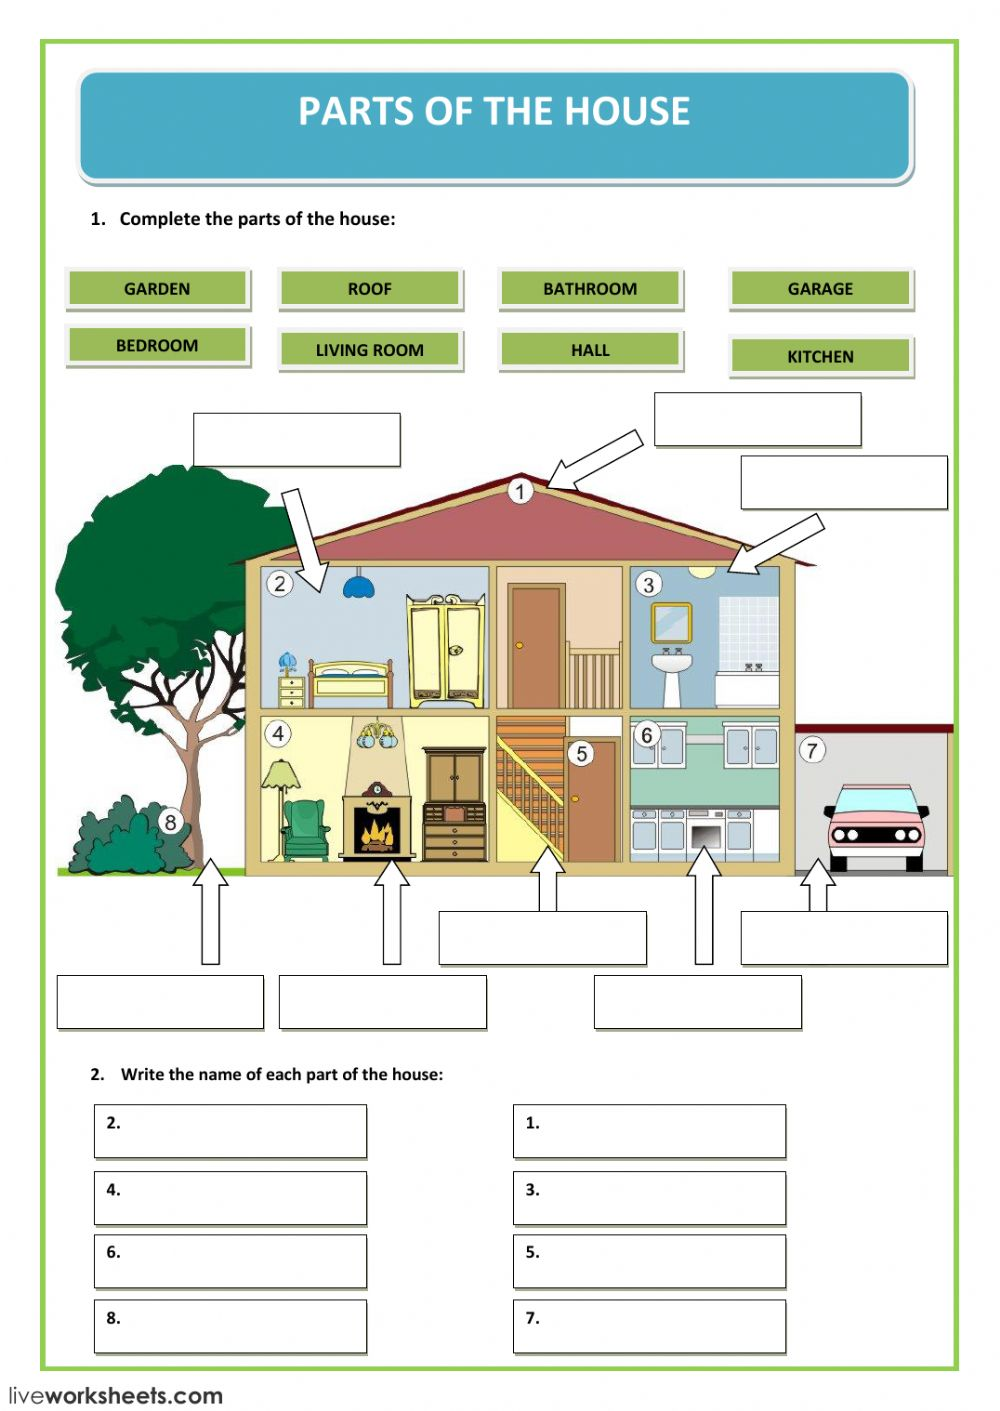 Parts Of The House Interactive Worksheet